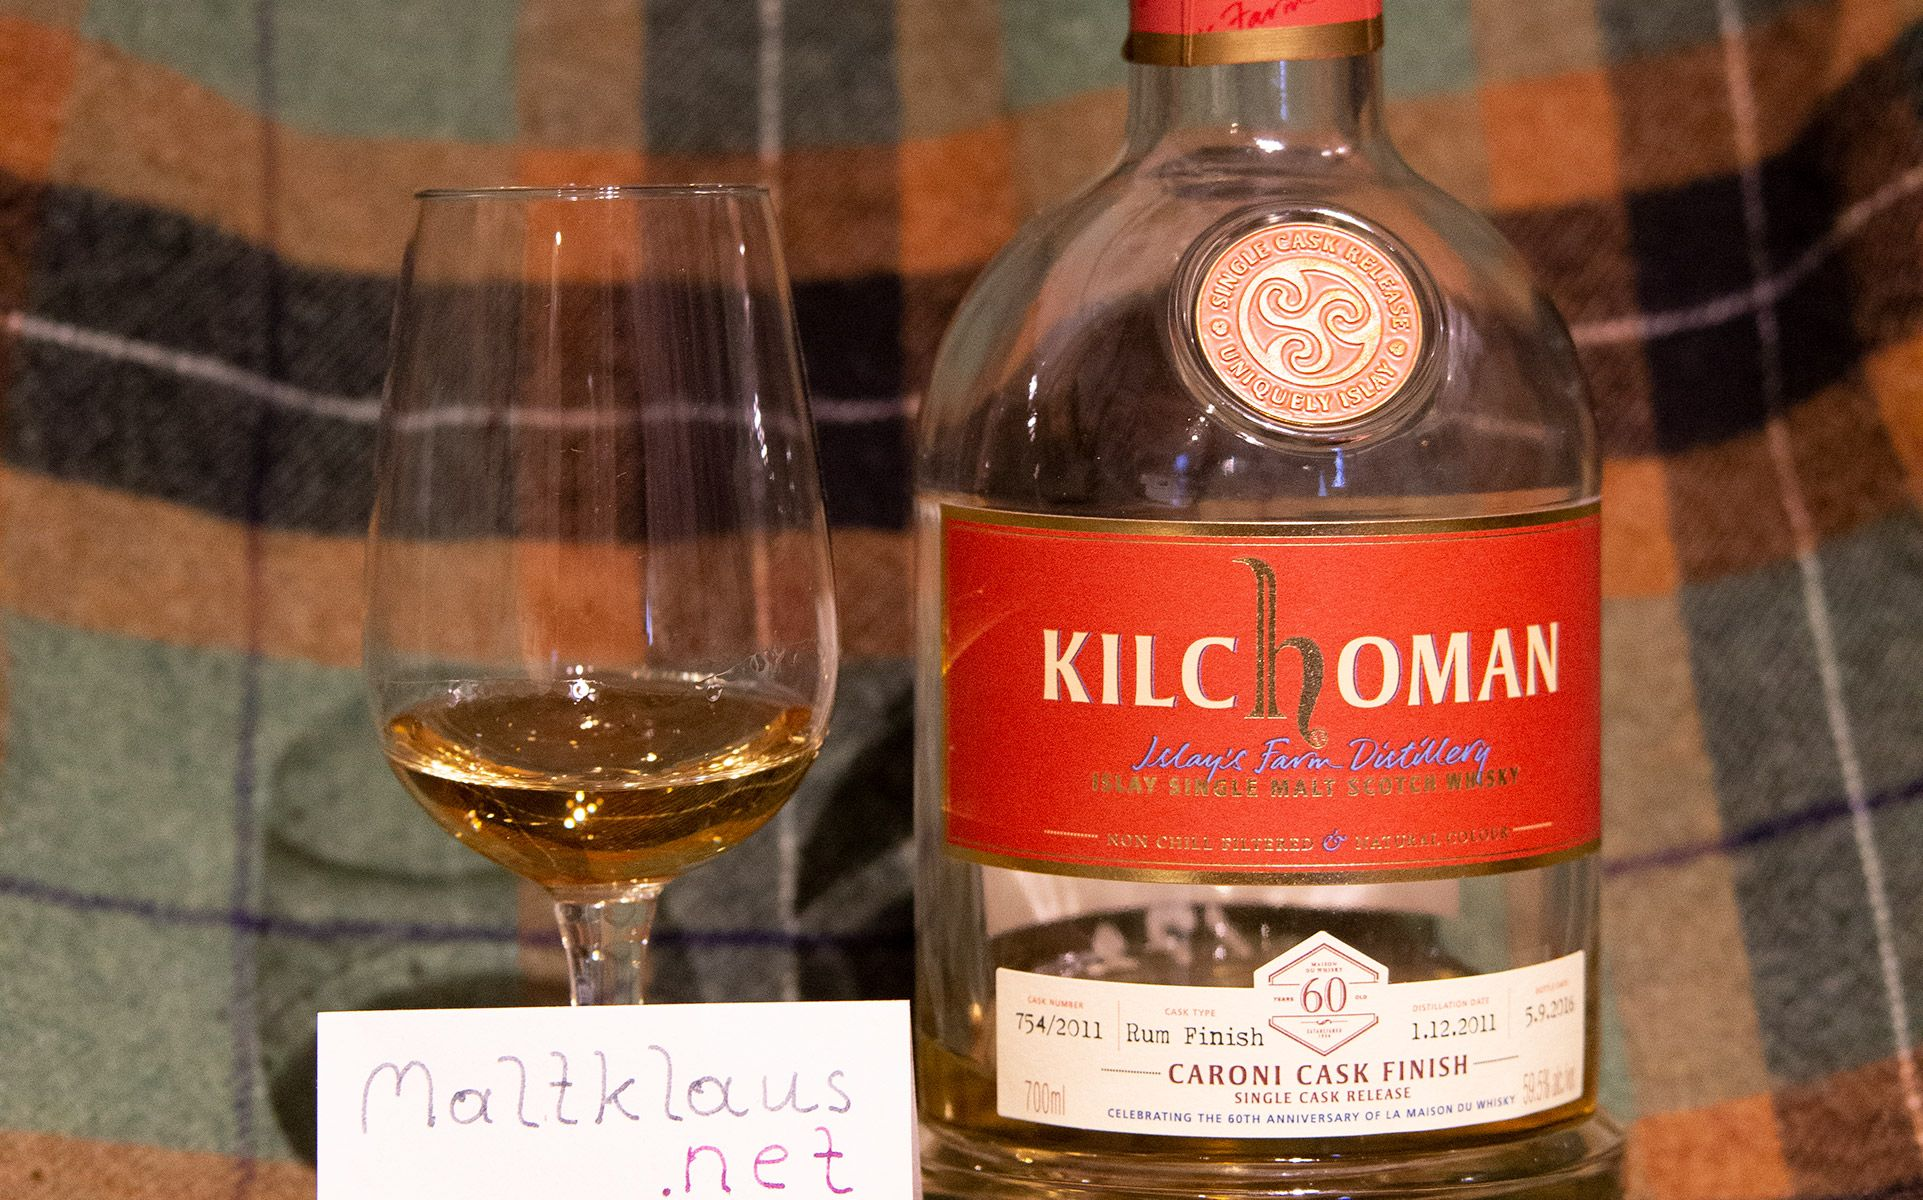 Kilchoman 2011-2016 Caroni Cask Finish for LMDW